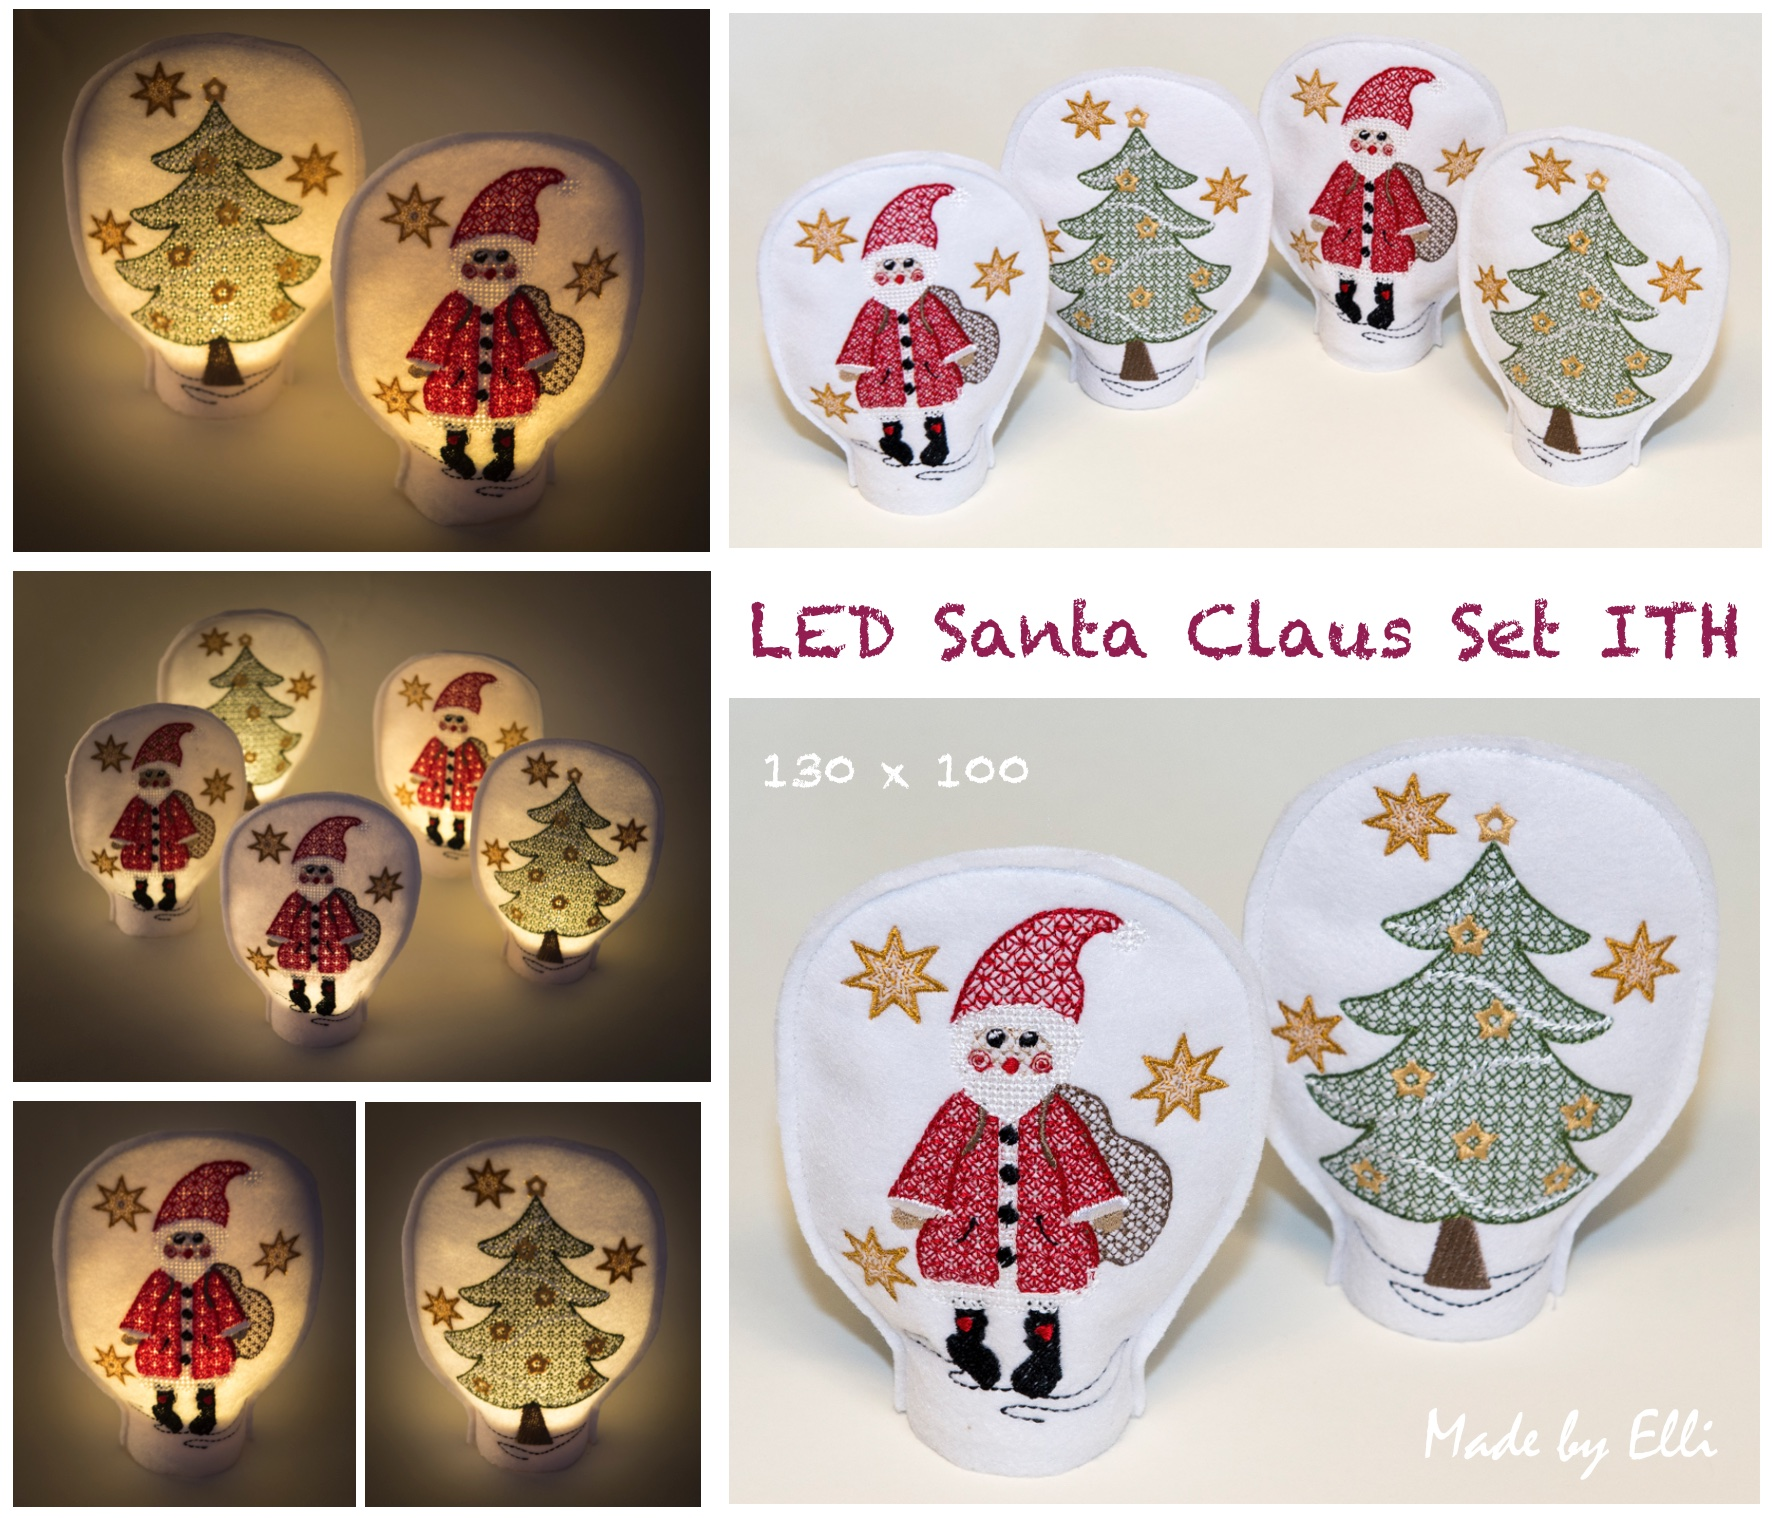 LED Santa Claus ITH SET